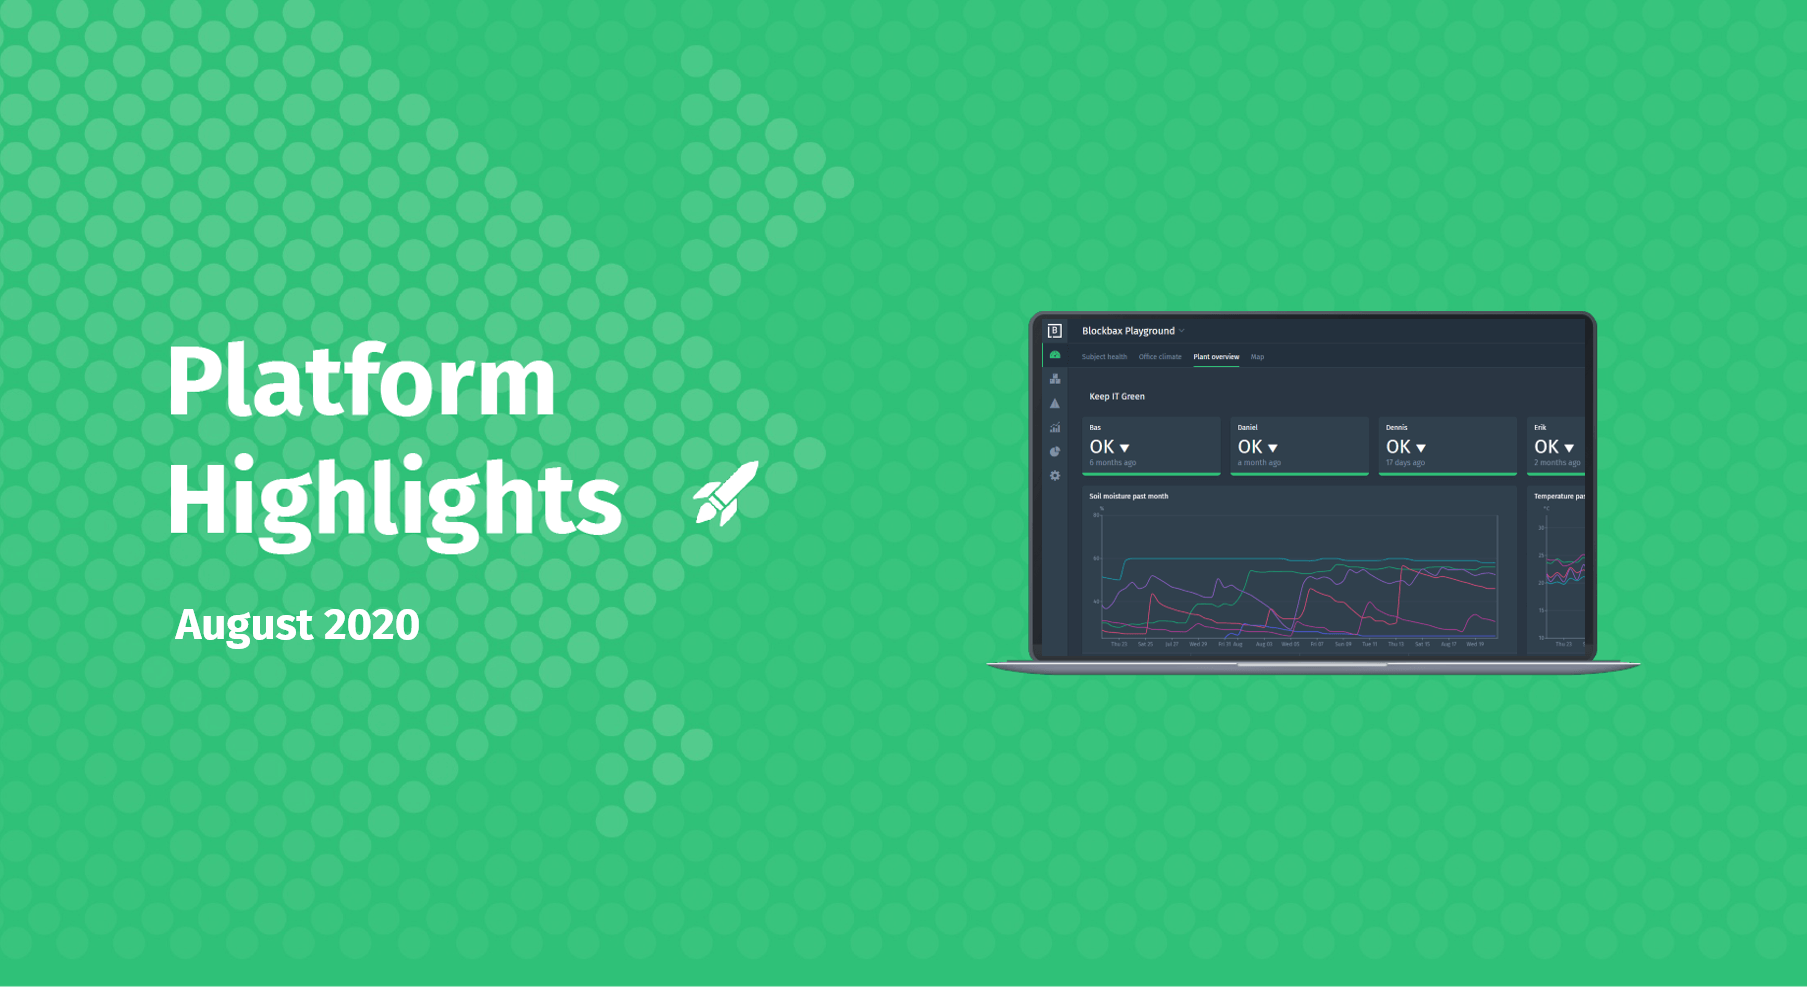 Platform highlights